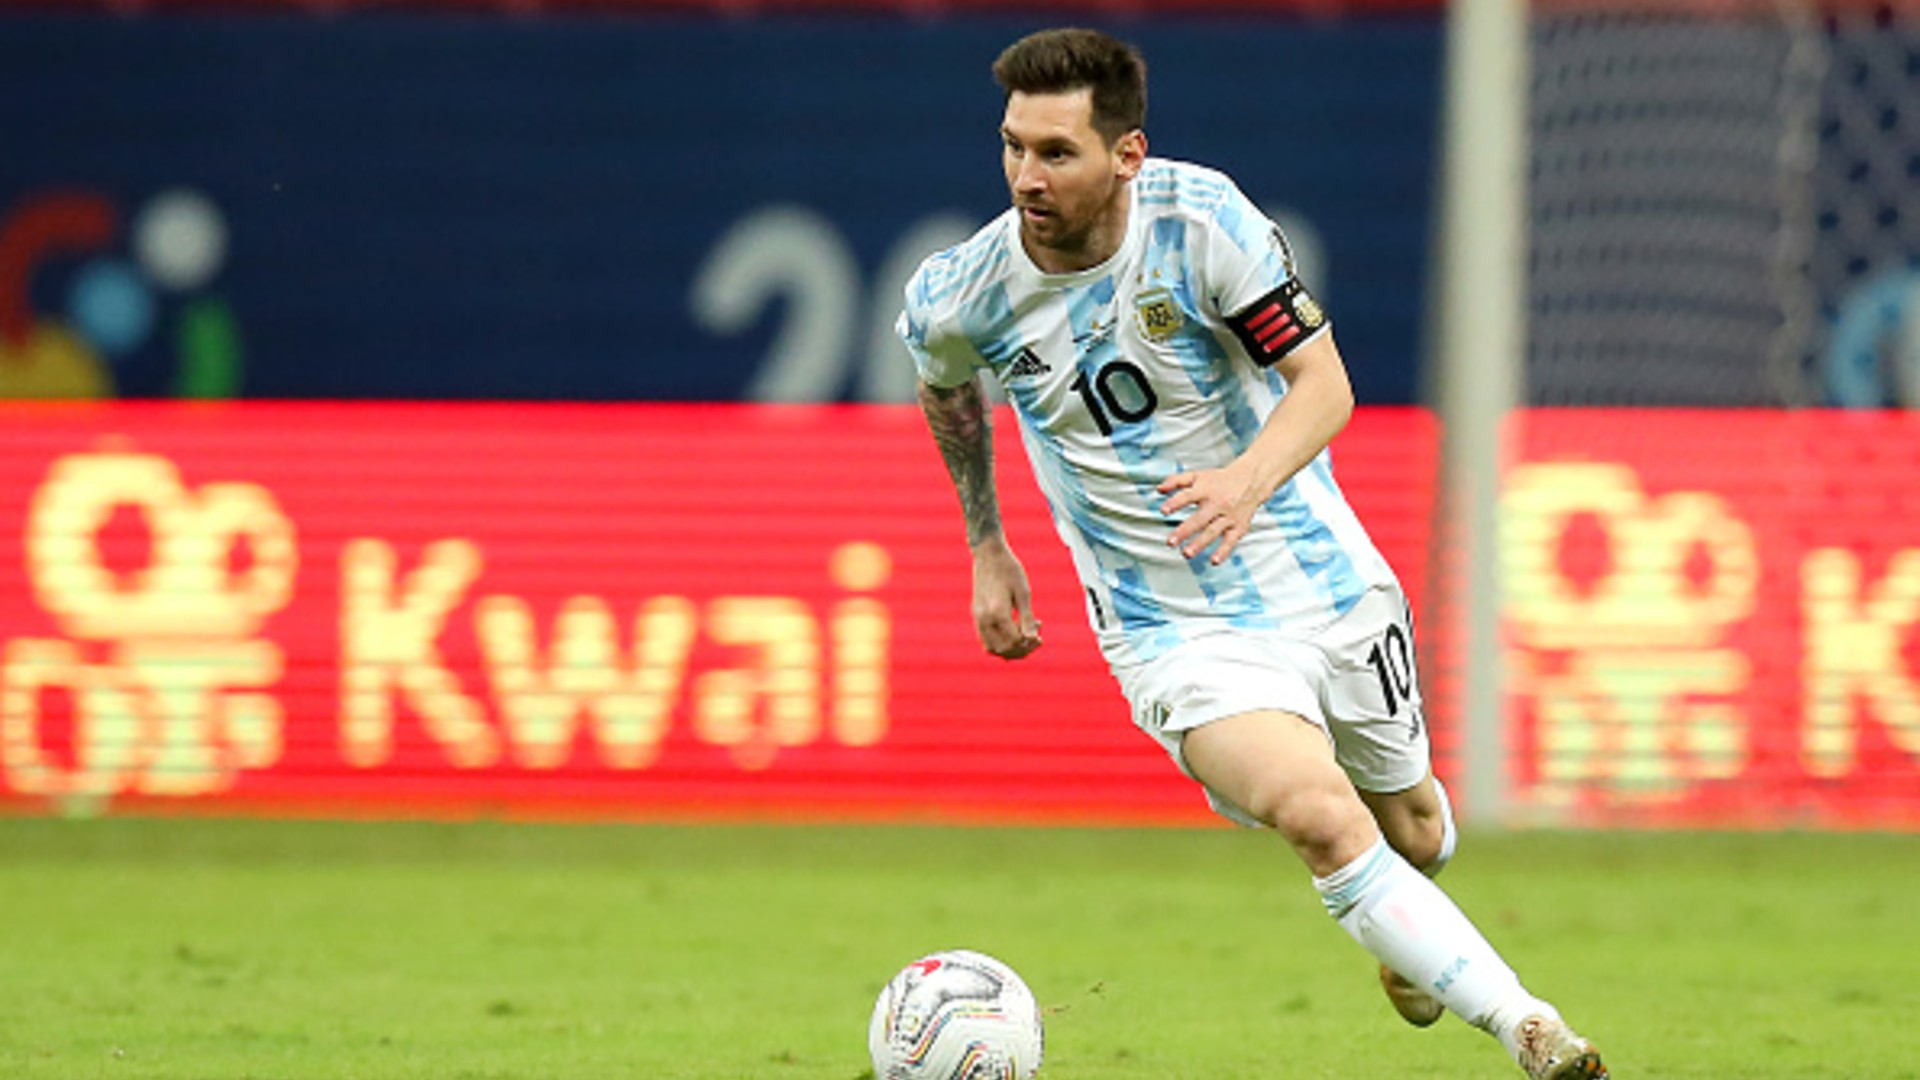 Analysing Lionel Messi's 76 international goals - Which team has the Argentine star scored the most against?